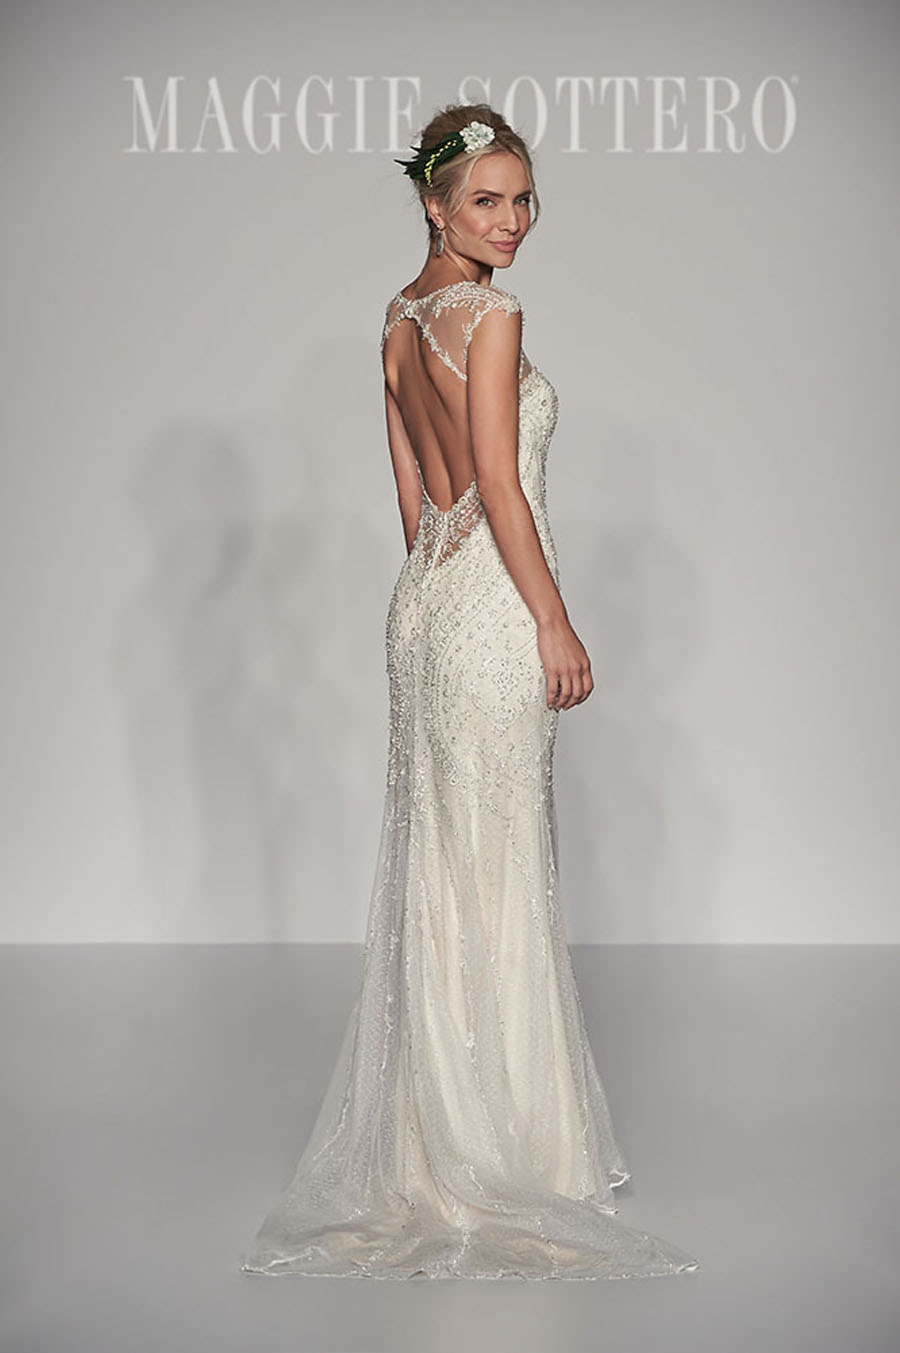 Maggie Sottero Spring 2017 Collection - Petra Back